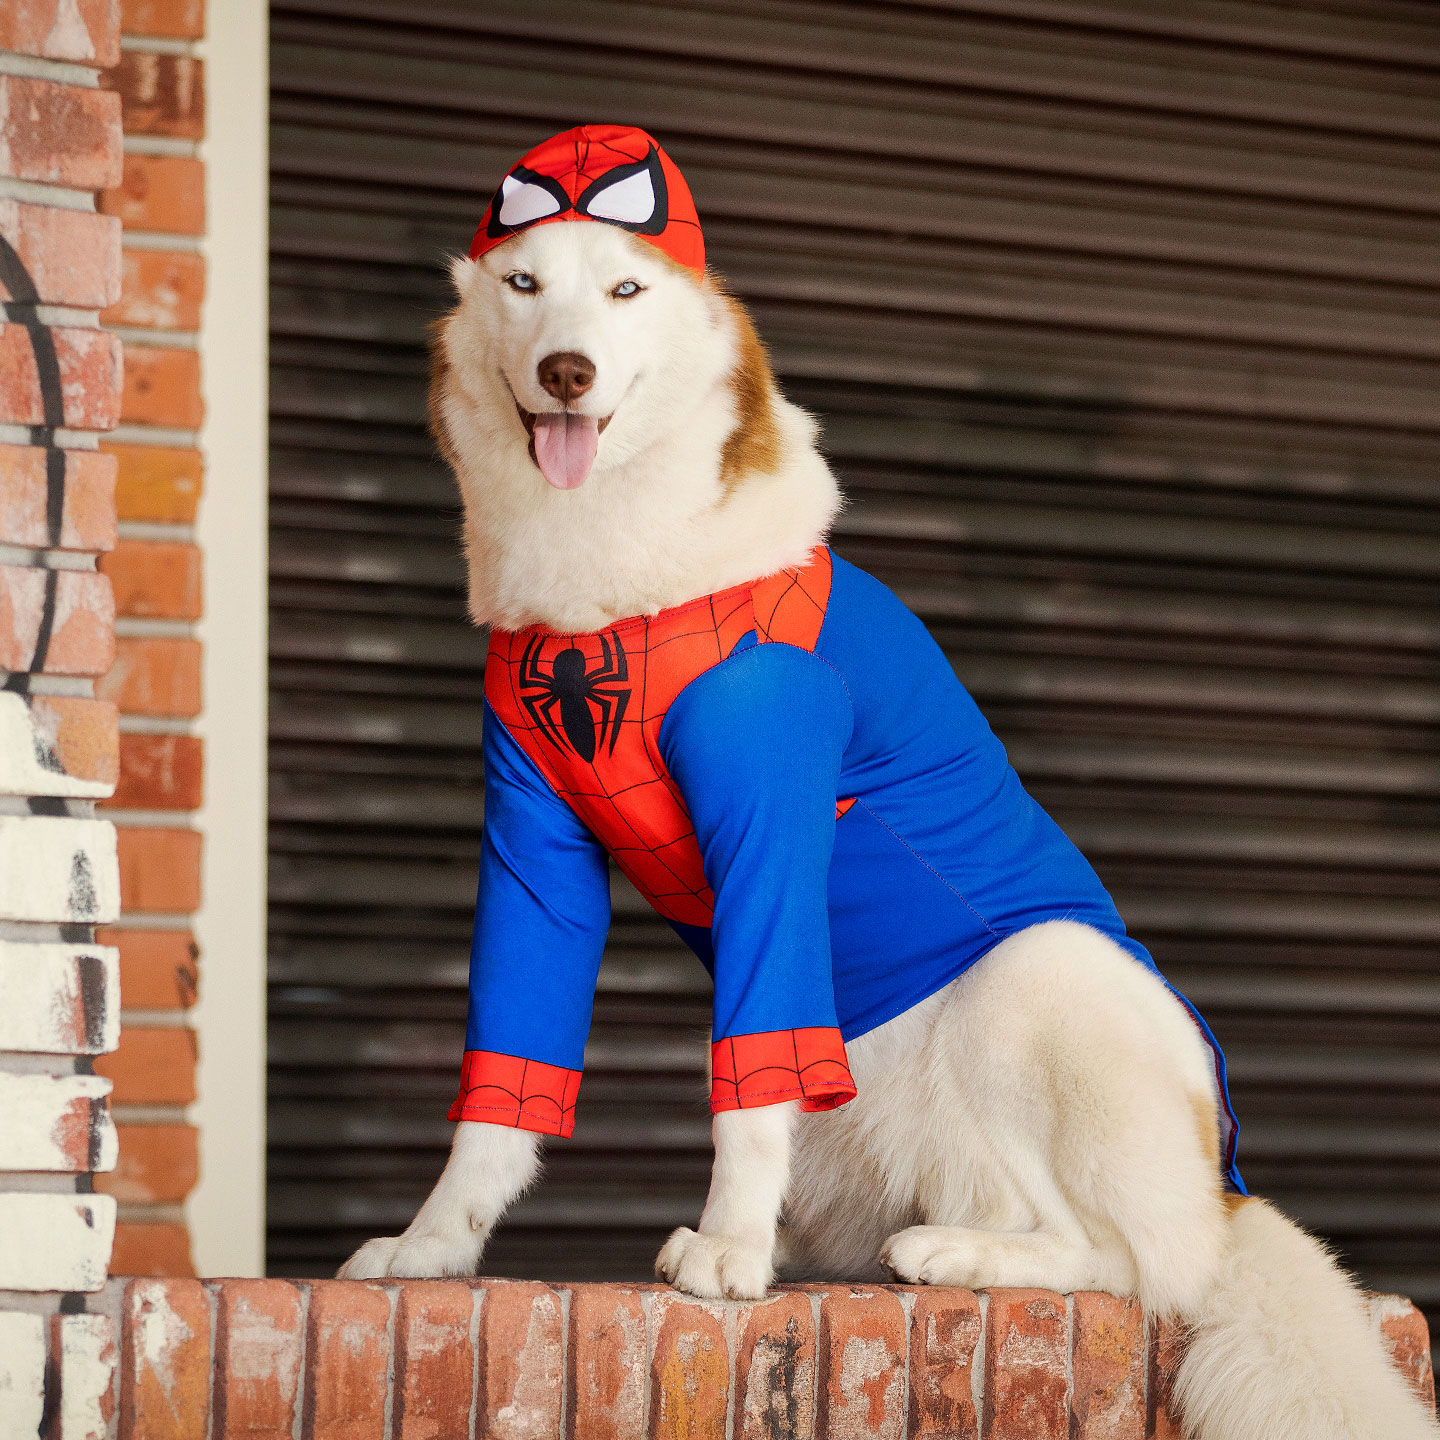 Dog Superhero Costumes Halloween Costumes For Canine Crimefighters These amazing avengers costumes and accessories will have you ready for the movies of phase 4. dog superhero costumes halloween